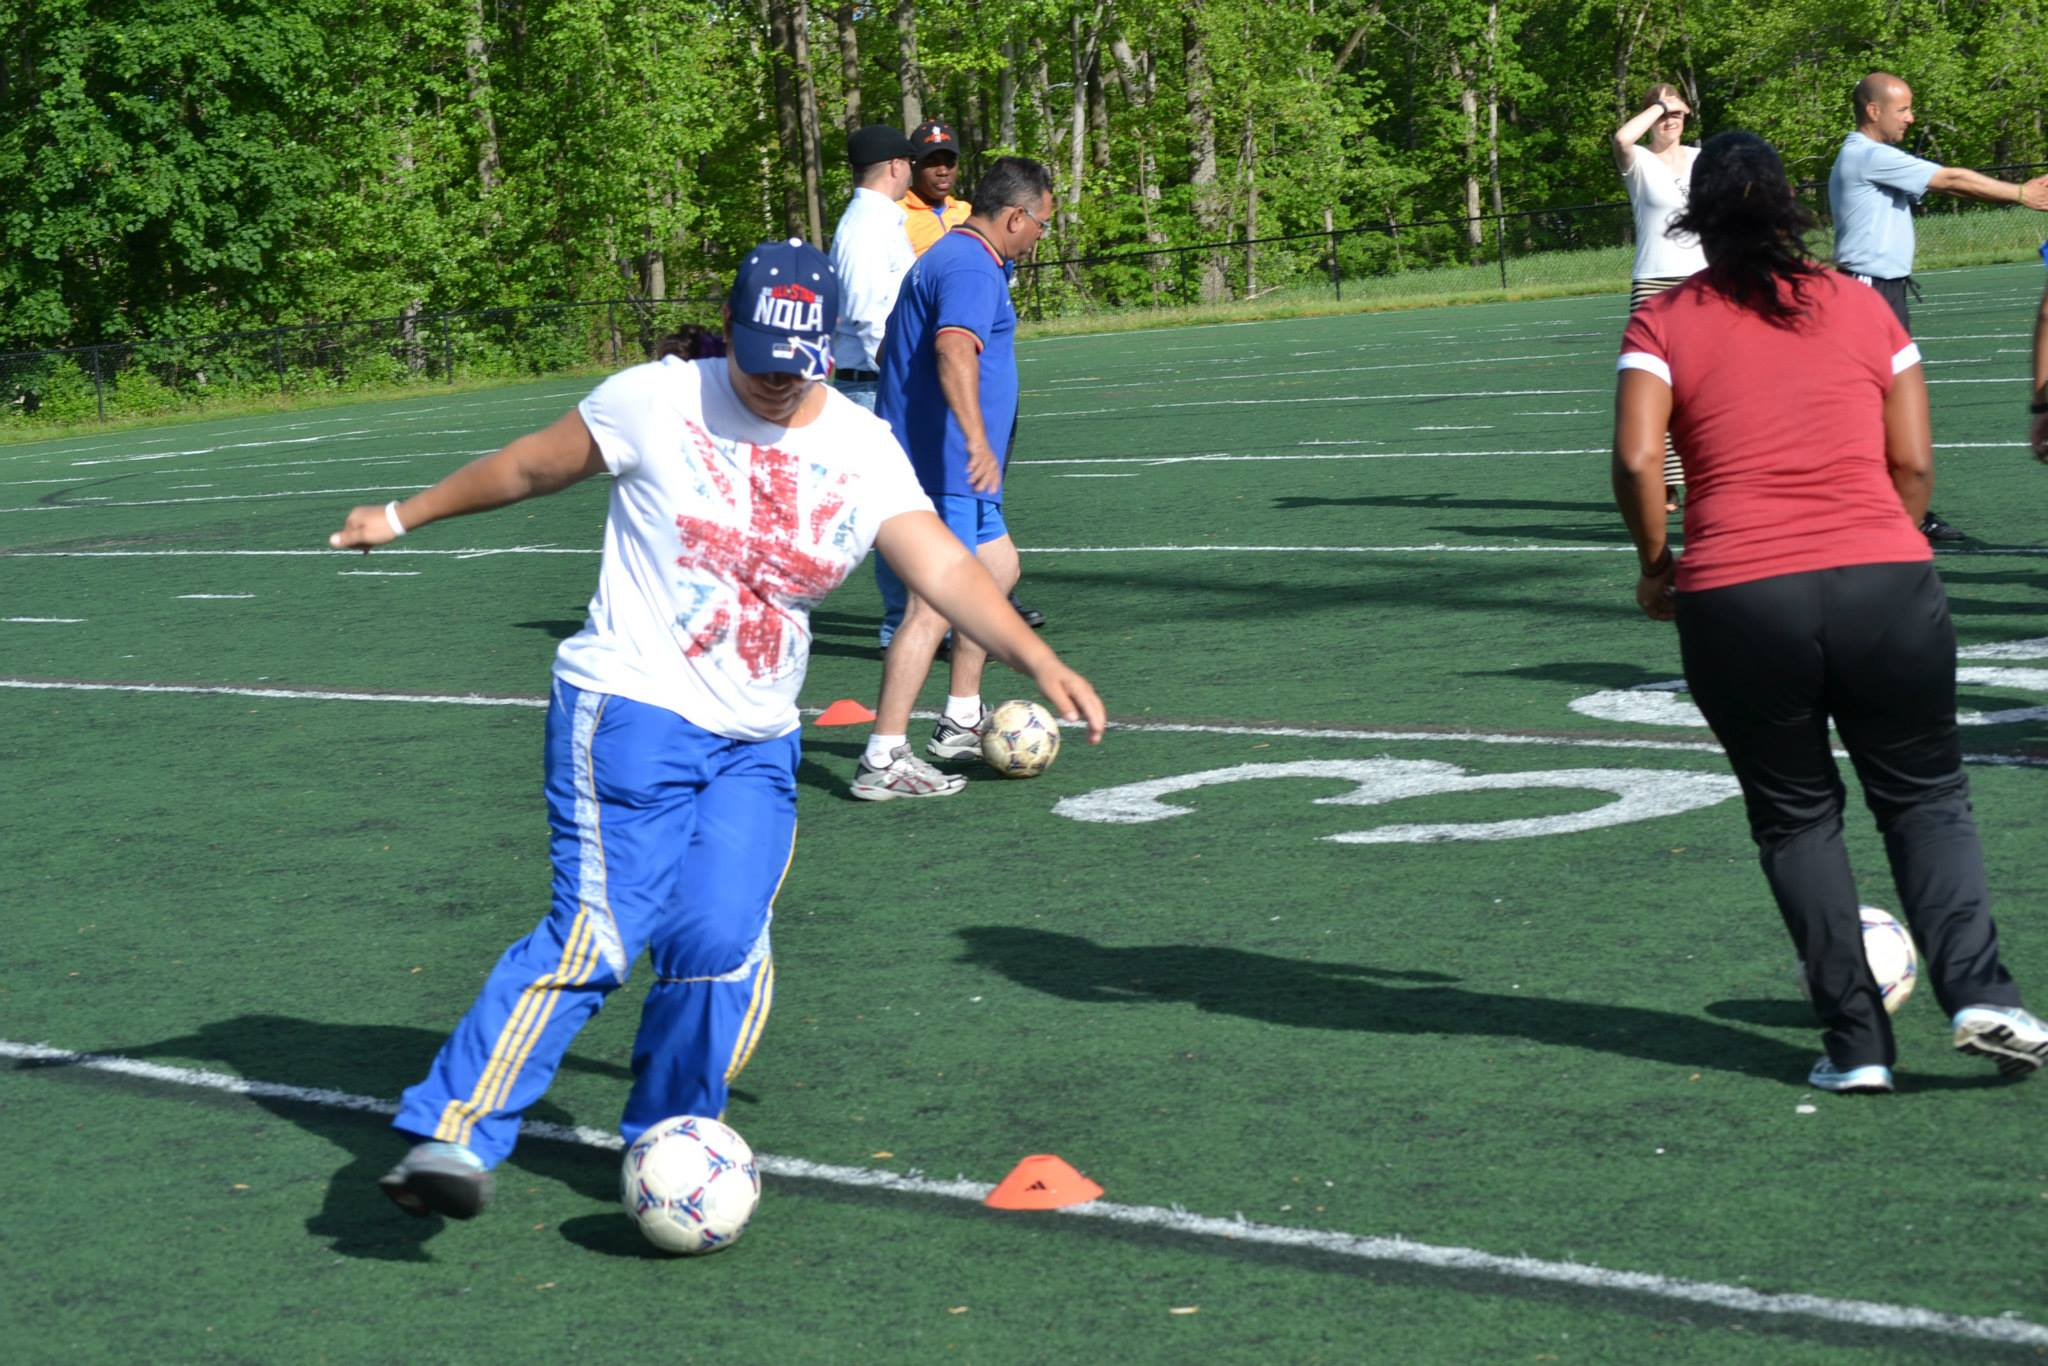 One of the participants practices her ball handling skills during a drill